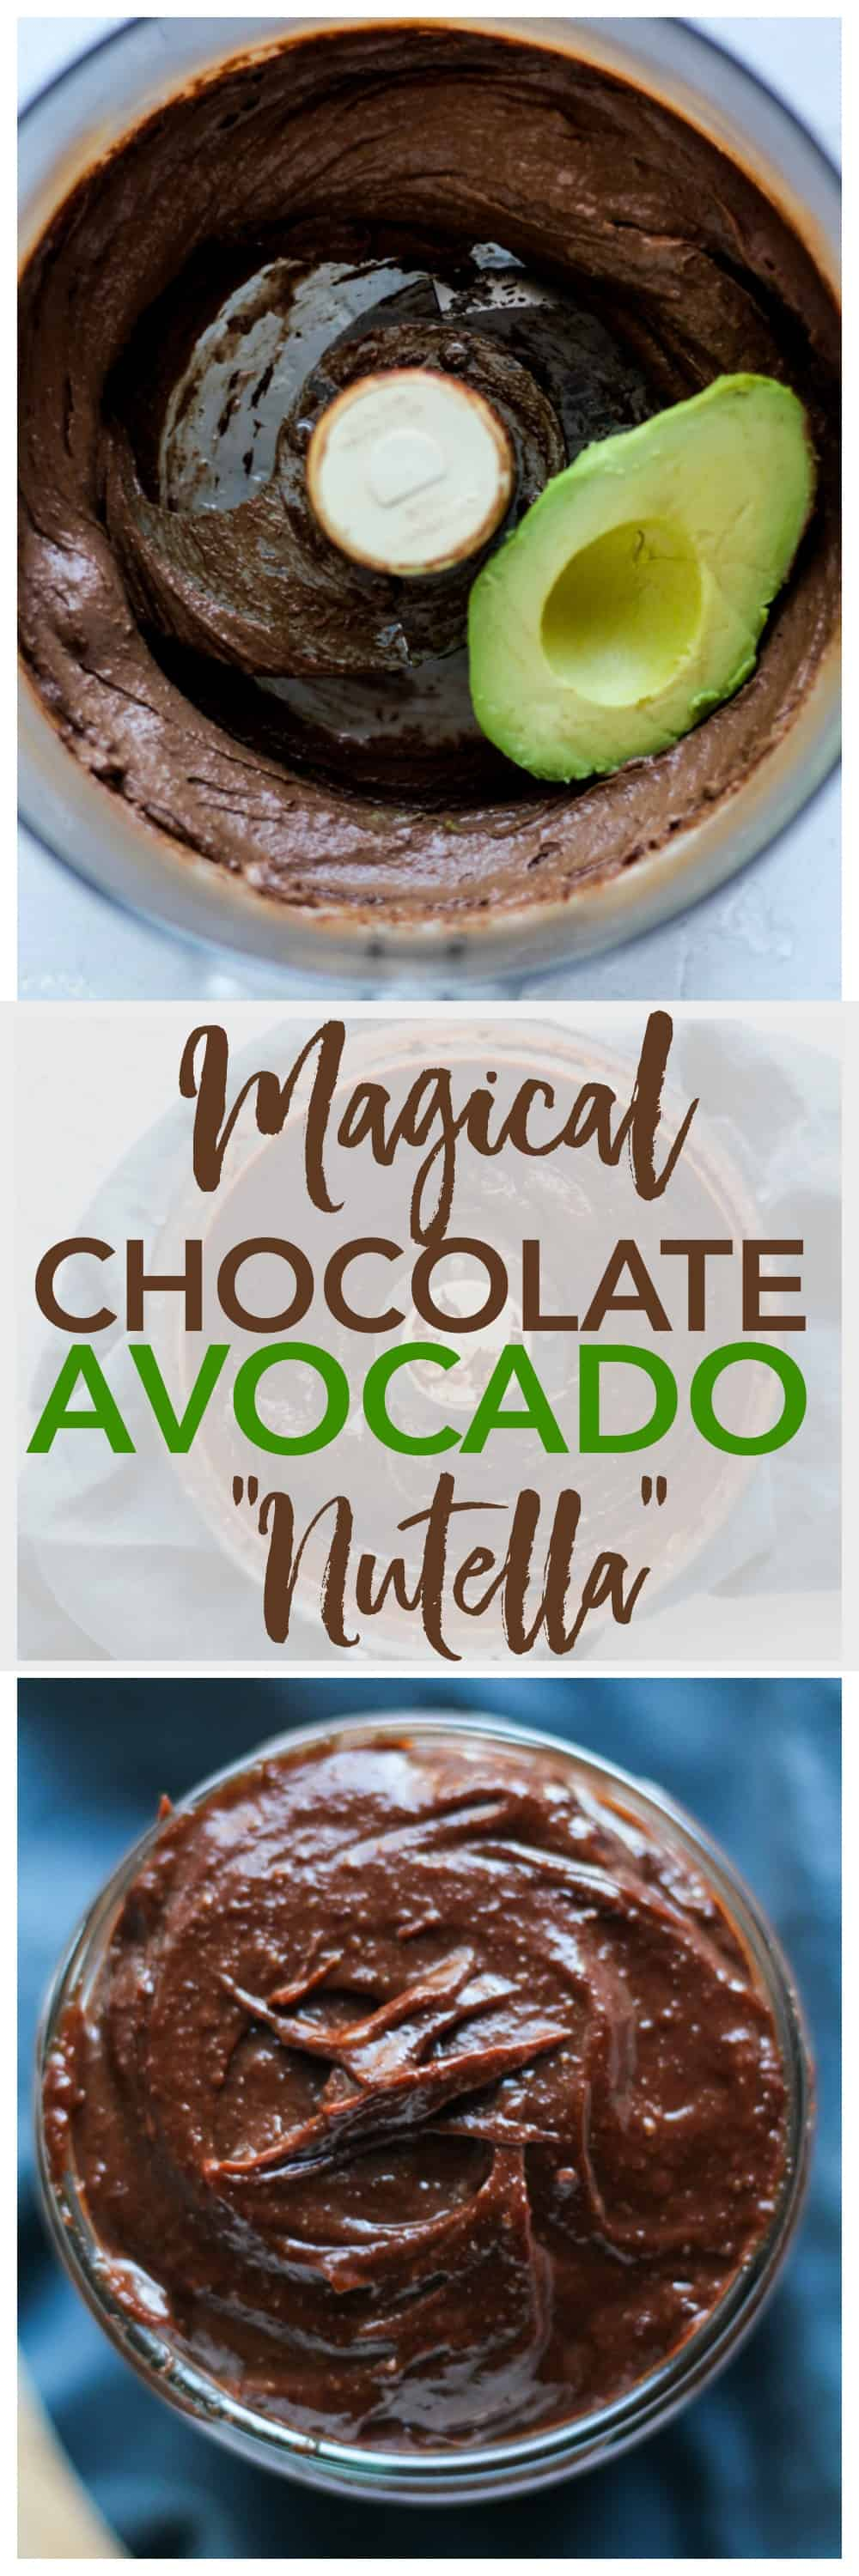 "This healthy homemade ""Nutella"" recipe is better than the real thing!"